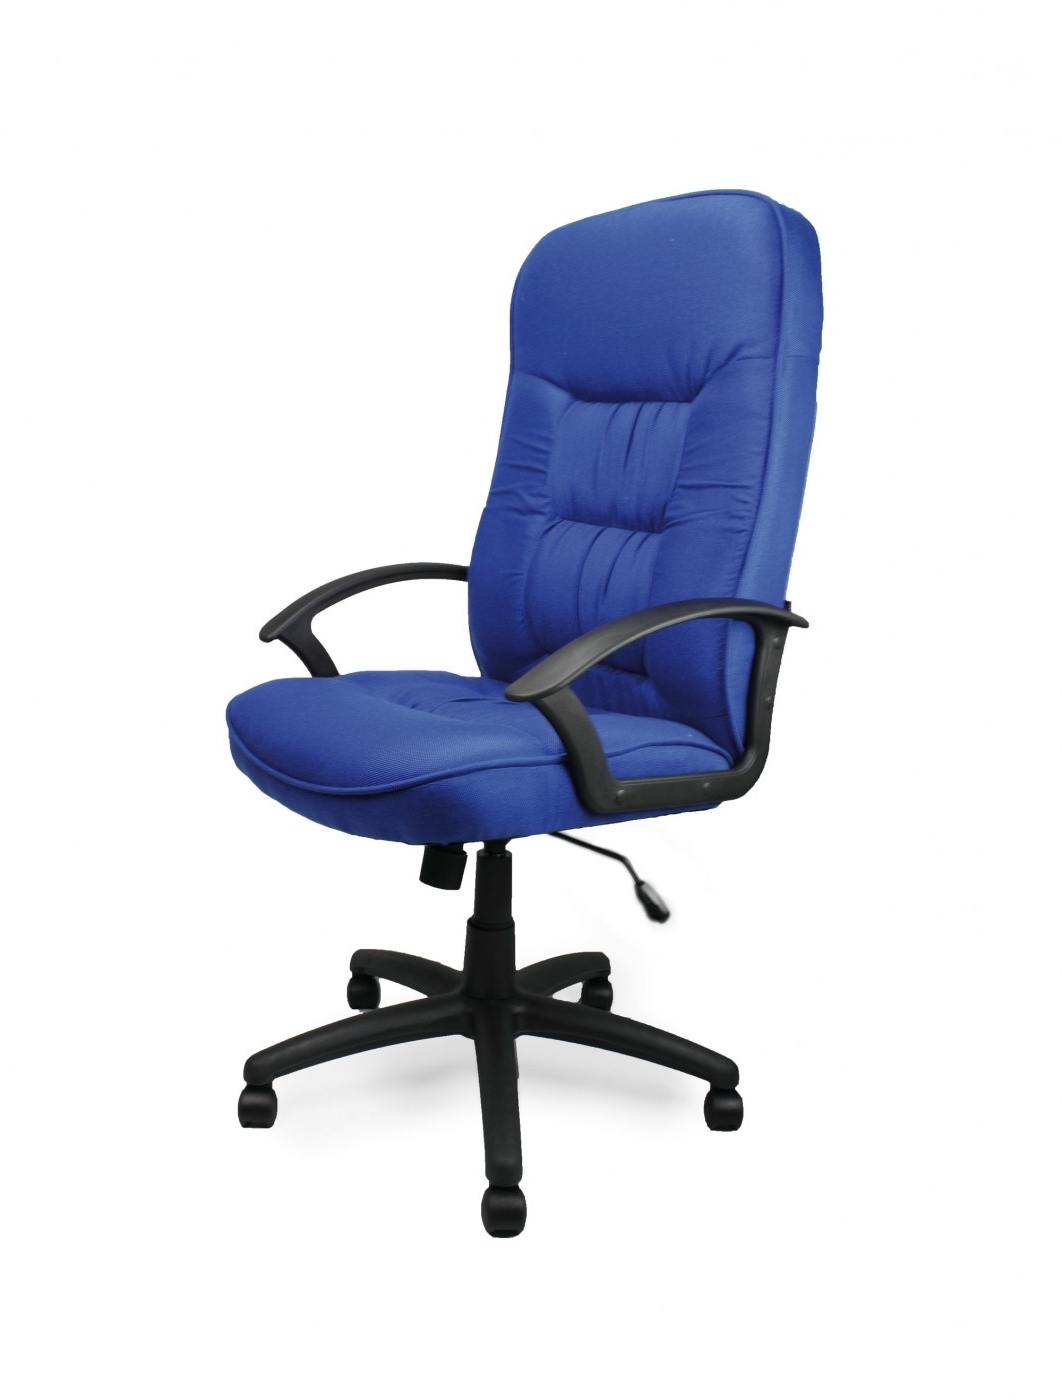 Astonishing Coniston Fabric High Back Executive Office Chair For Fashionable Premium Executive Office Chairs (View 2 of 20)